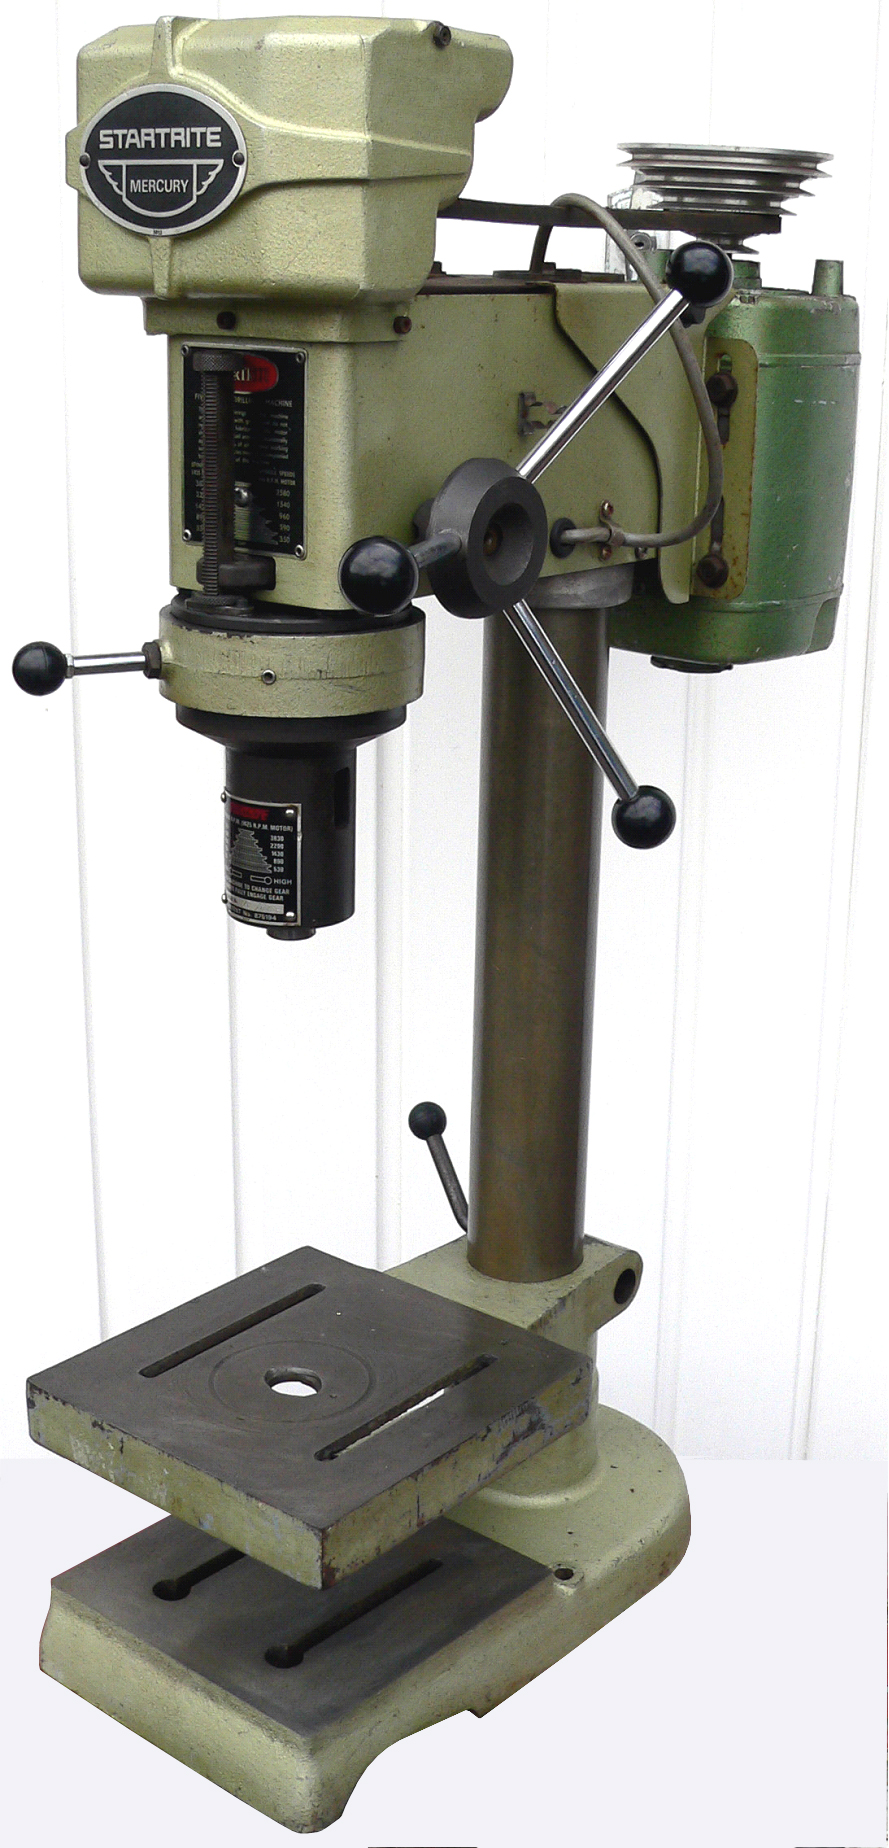 Spindle nose of the Startrite 8-speed epicyclic-geared Mercury drill